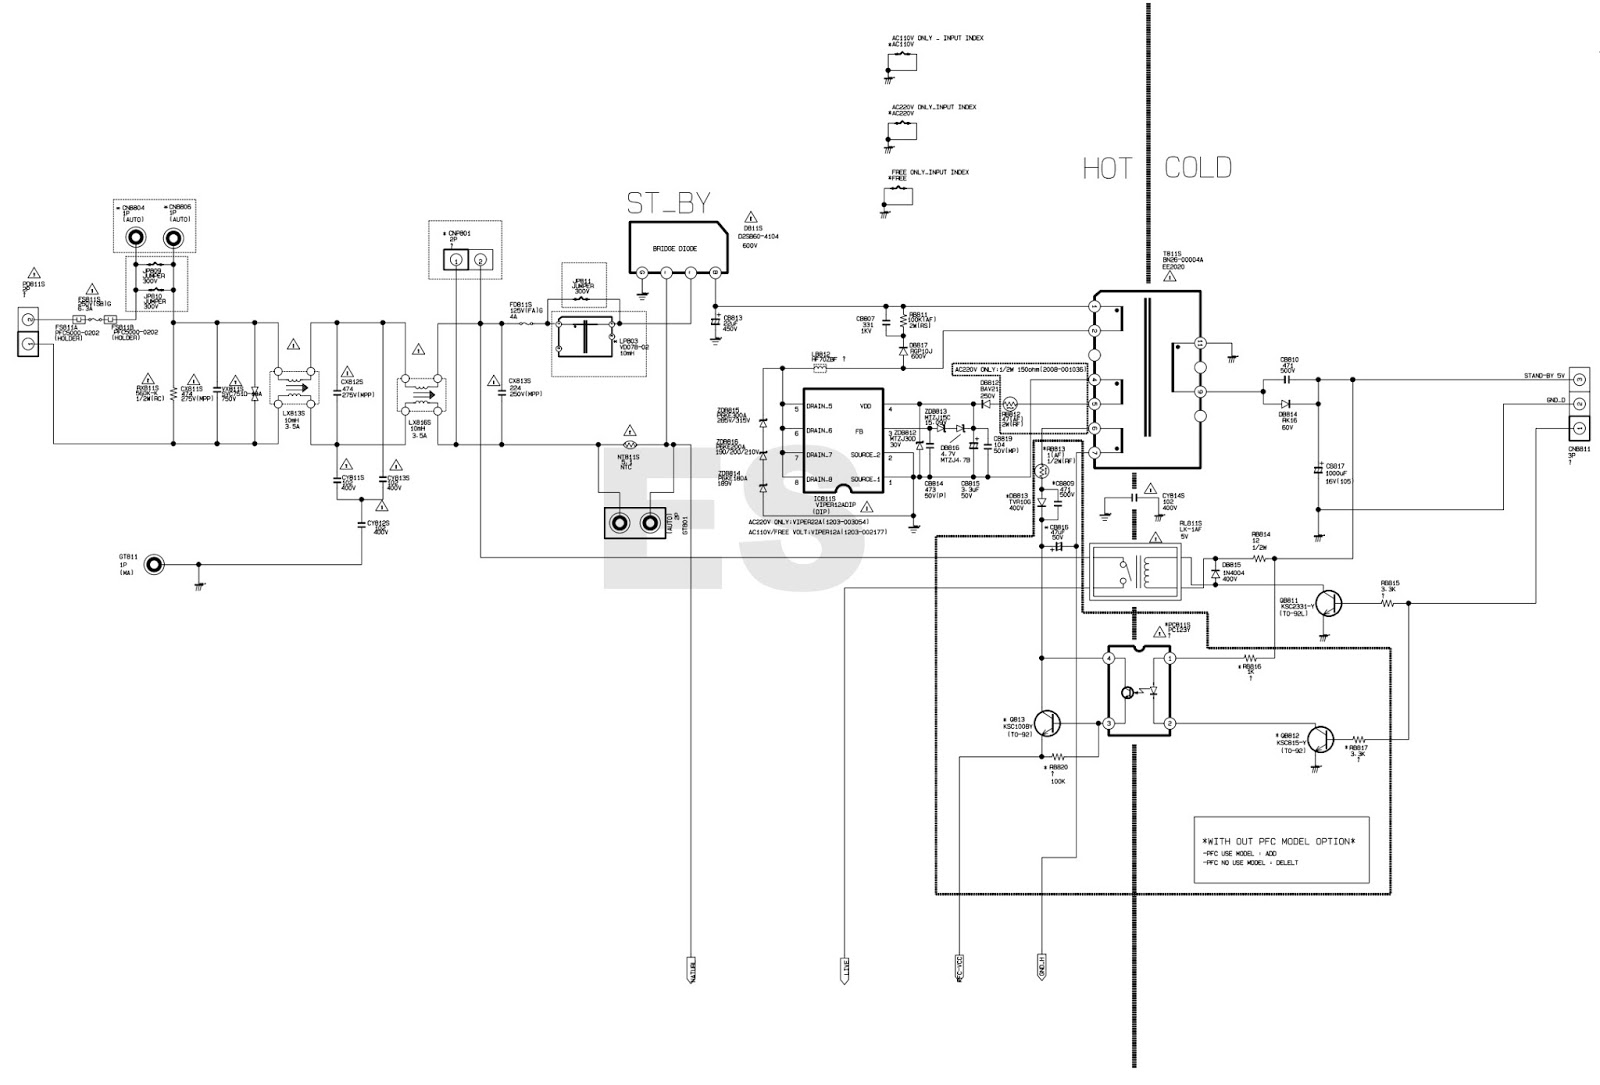 Lcd tv wiring diagram free vehicle wiring diagrams as well tv circuit board repair as well samsung tv schematic circuit rh chamaela co lcd freerunsca Image collections